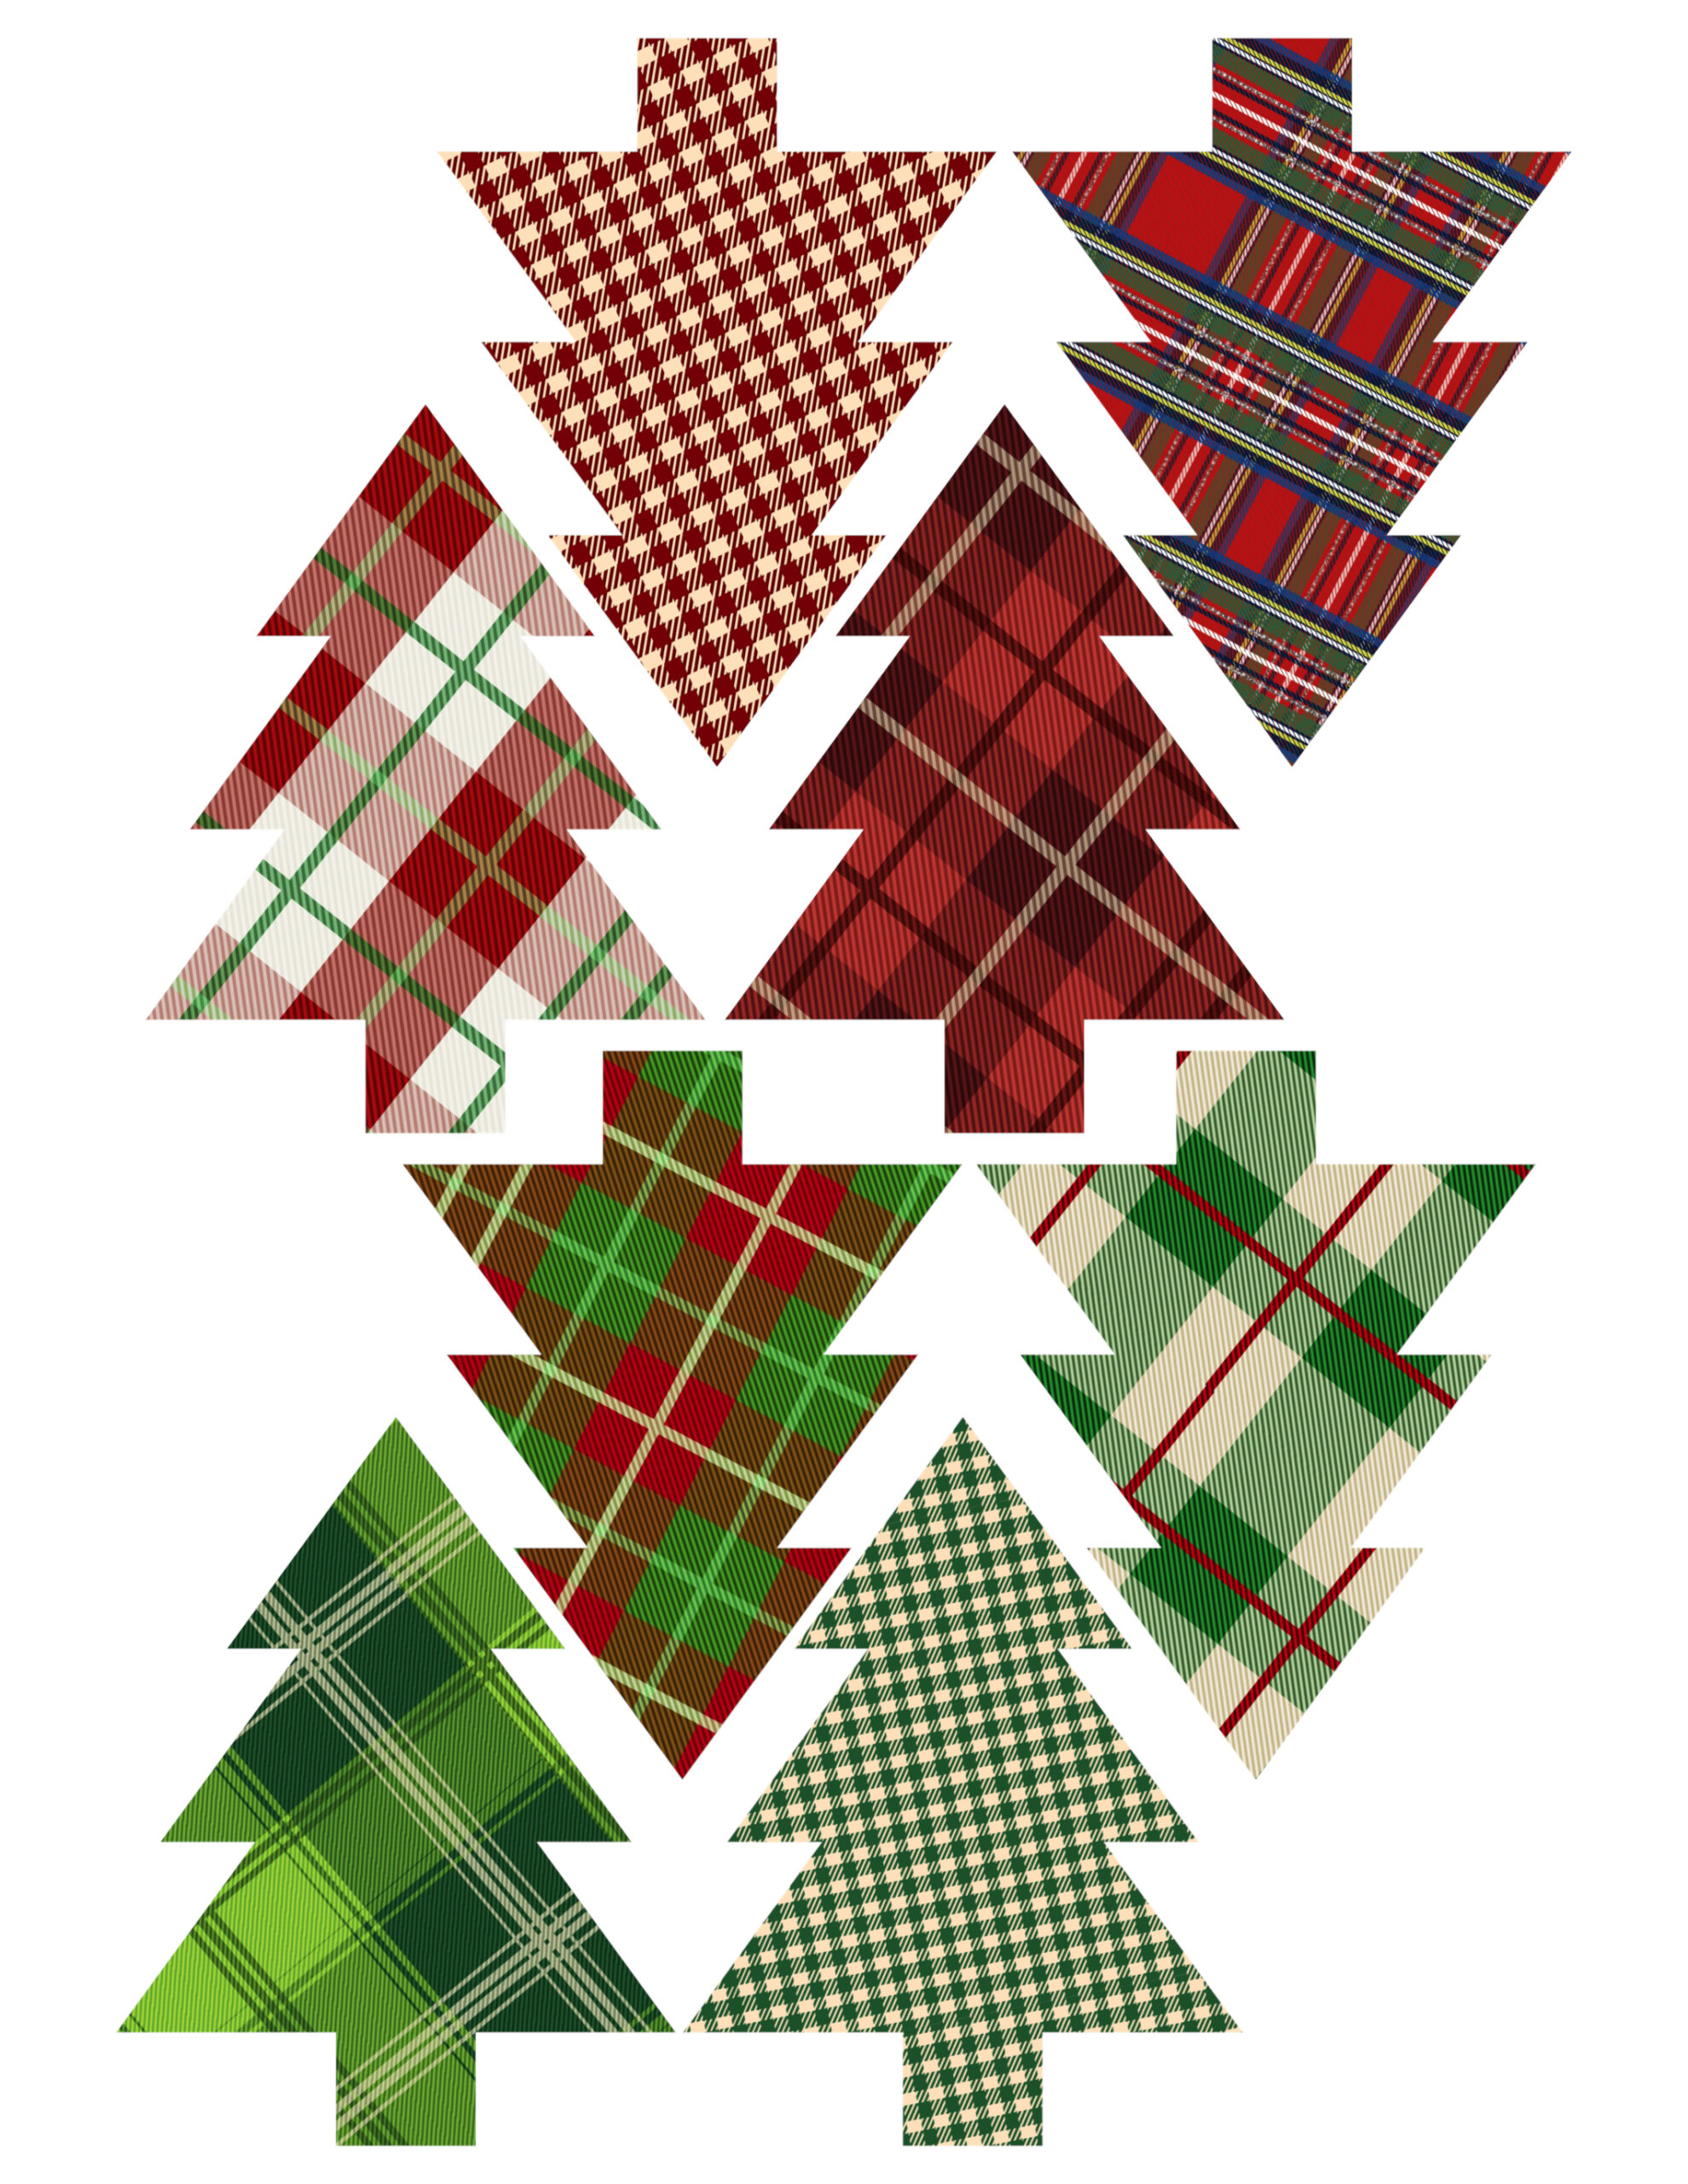 image relating to Ornaments Printable titled Plaid Xmas Tree Ornaments Printable - Paper Path Layout